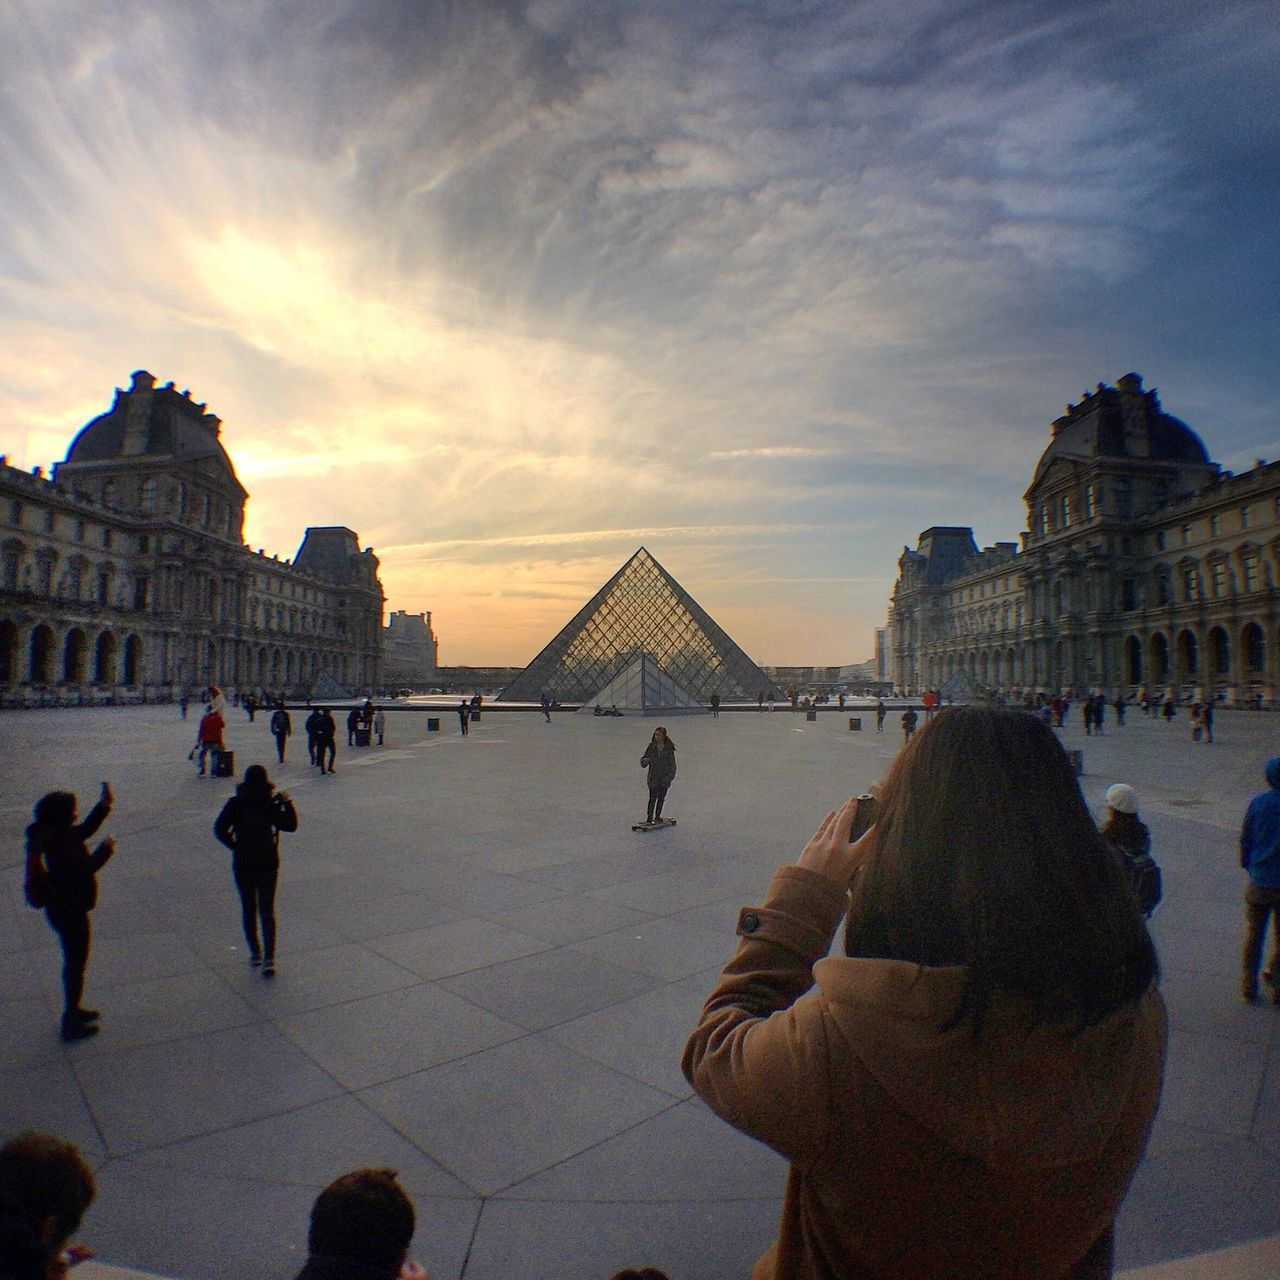 Pyramides | Architecture Building Exterior Built Structure Travel Destinations Real People Large Group Of People History Tourism Sky City Women Men Lifestyles Tourist Outdoors Day People Adults Only Adult Paris Louvre Museum